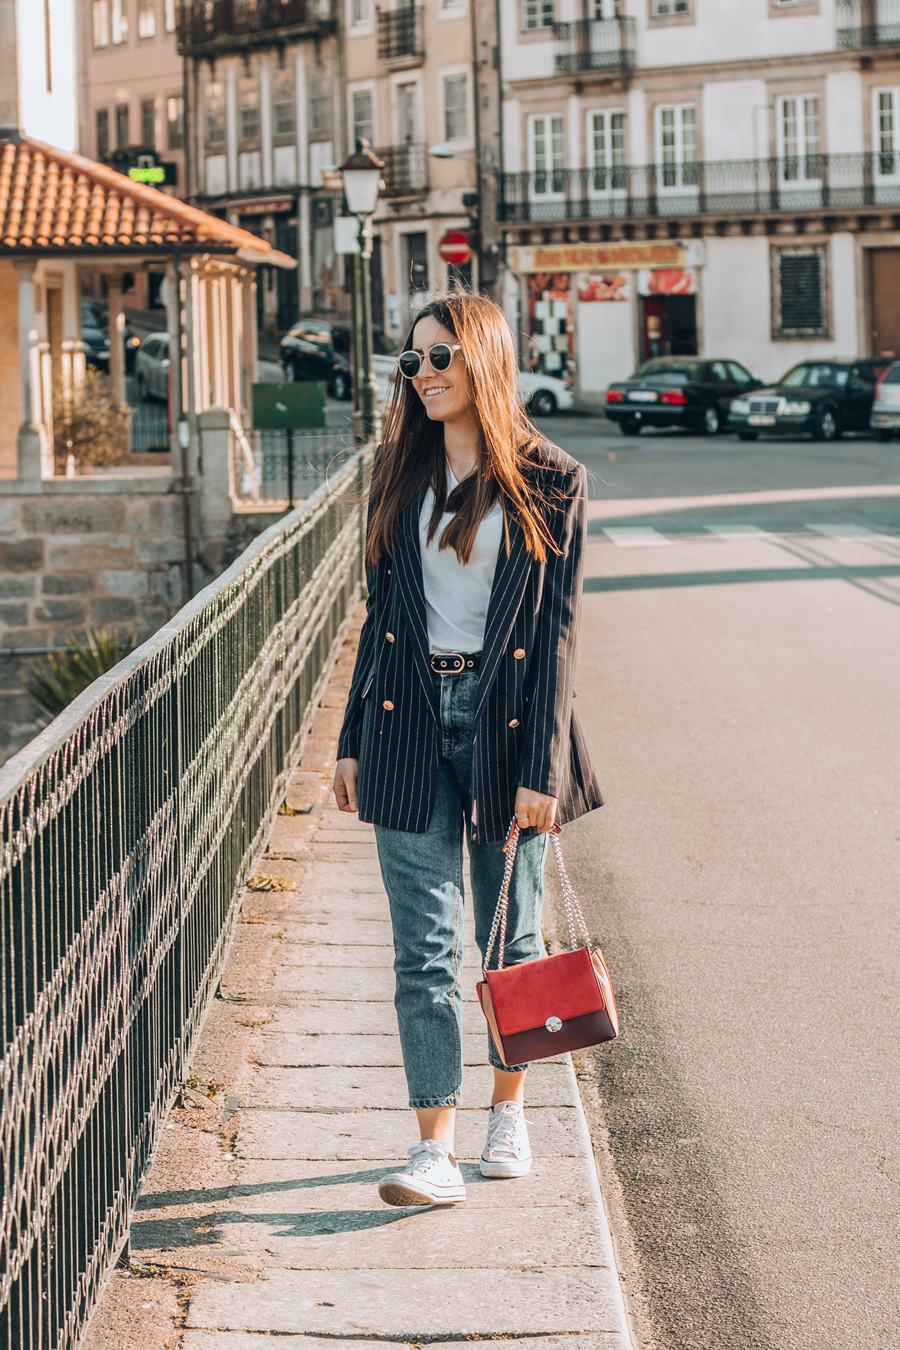 mom jeans outfits for spring